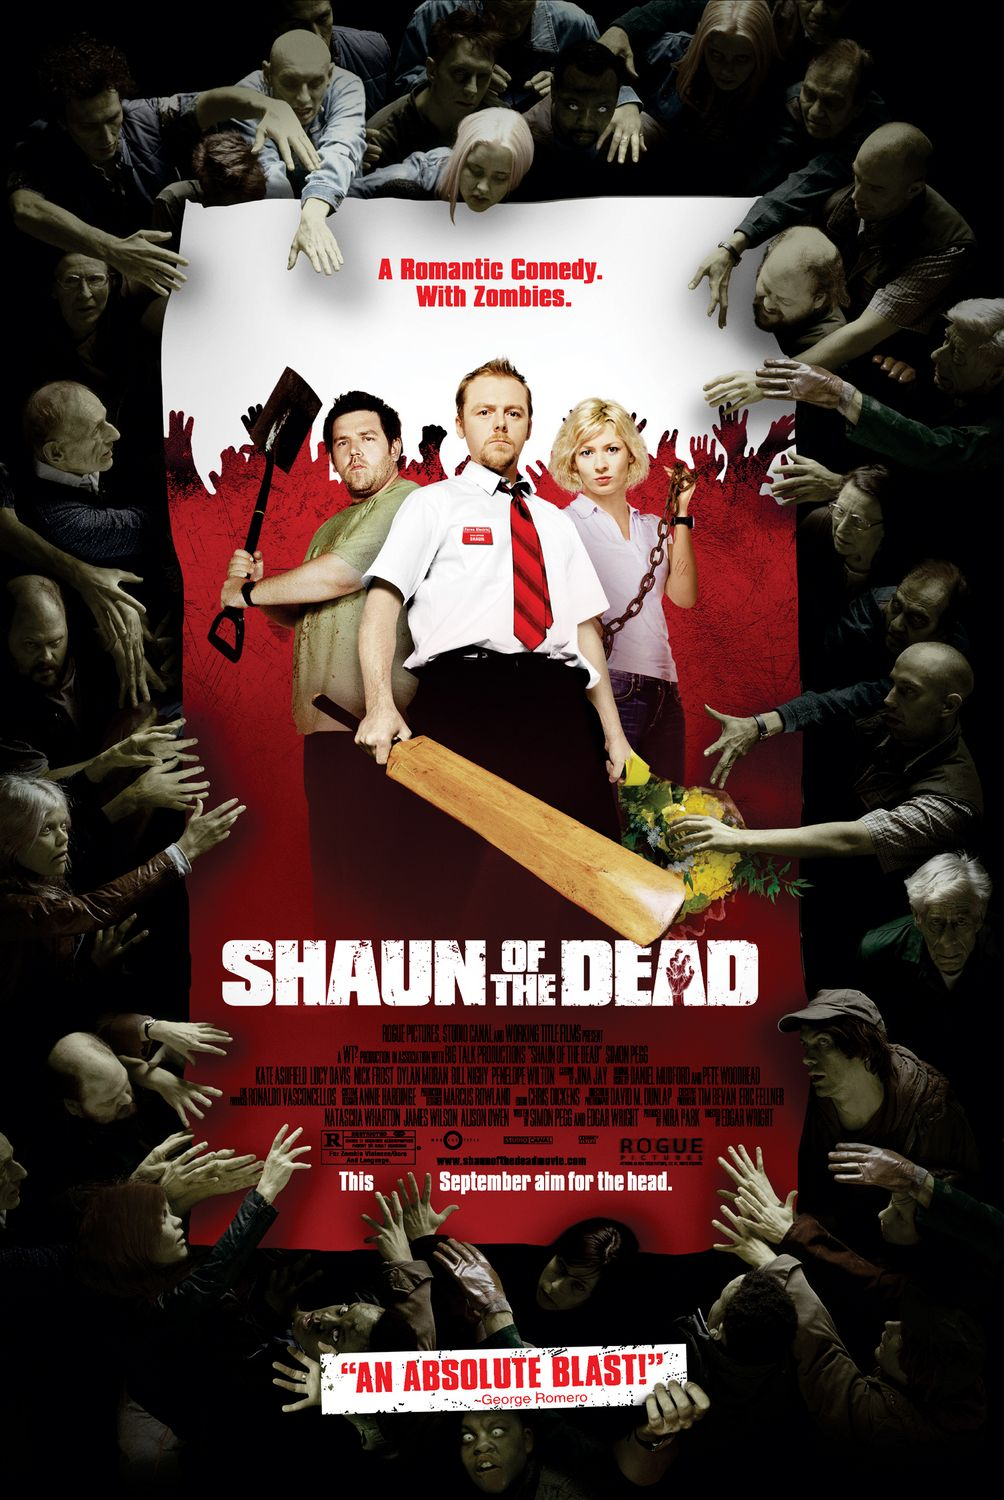 shaun-of-the-dead-poster02.jpg